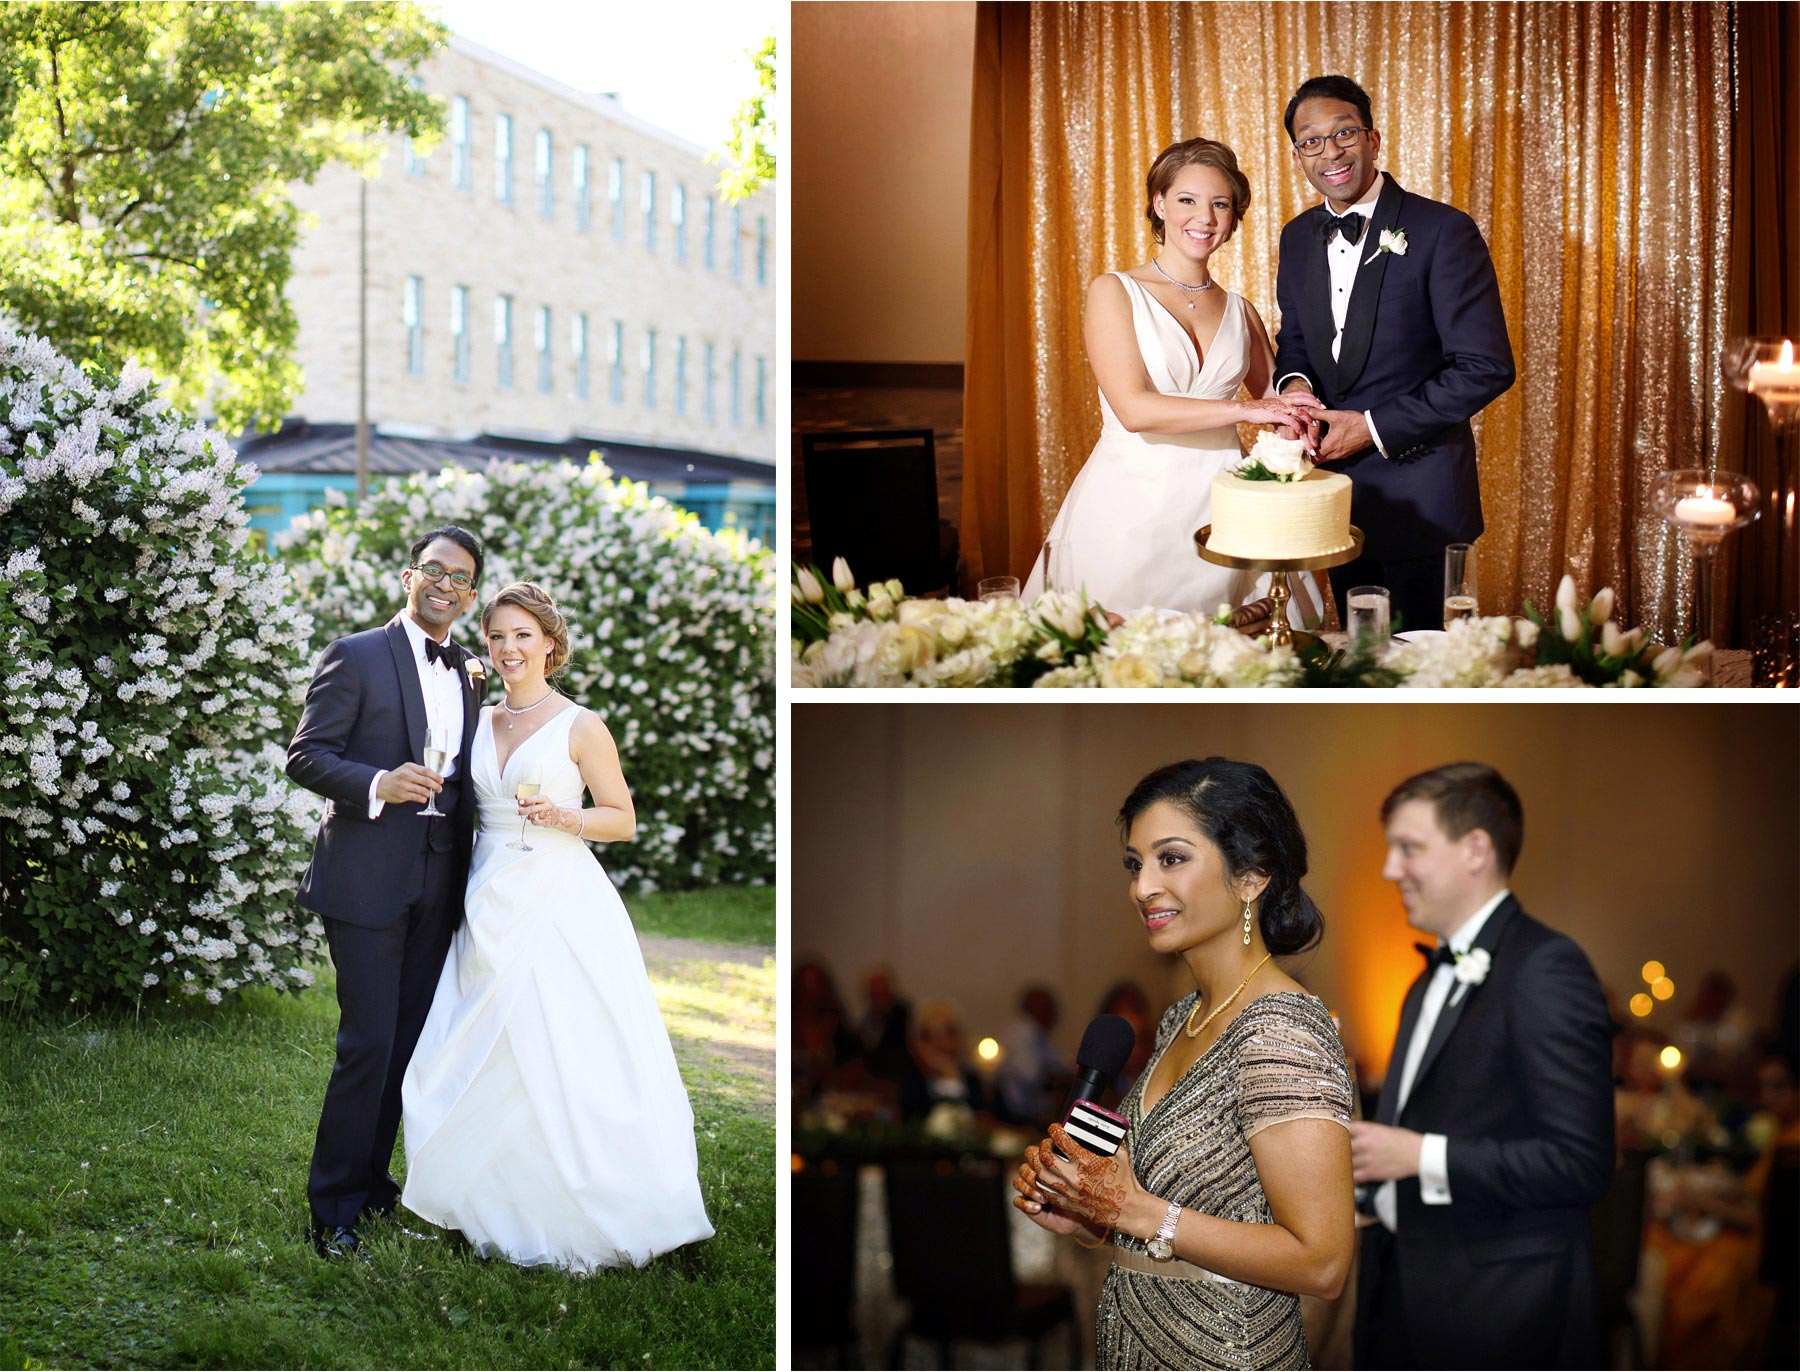 24-Minneapolis-Minnesota-Wedding-Photographer-by-Andrew-Vick-Photography-JW-Marriott-Mall-of-America-MOA-Spring-Bride-Groom-Champagne-Cake-Cutting-Speeches-Bridesmaid-Groomsmen-Henna-Rachel-and-Venu.jpg